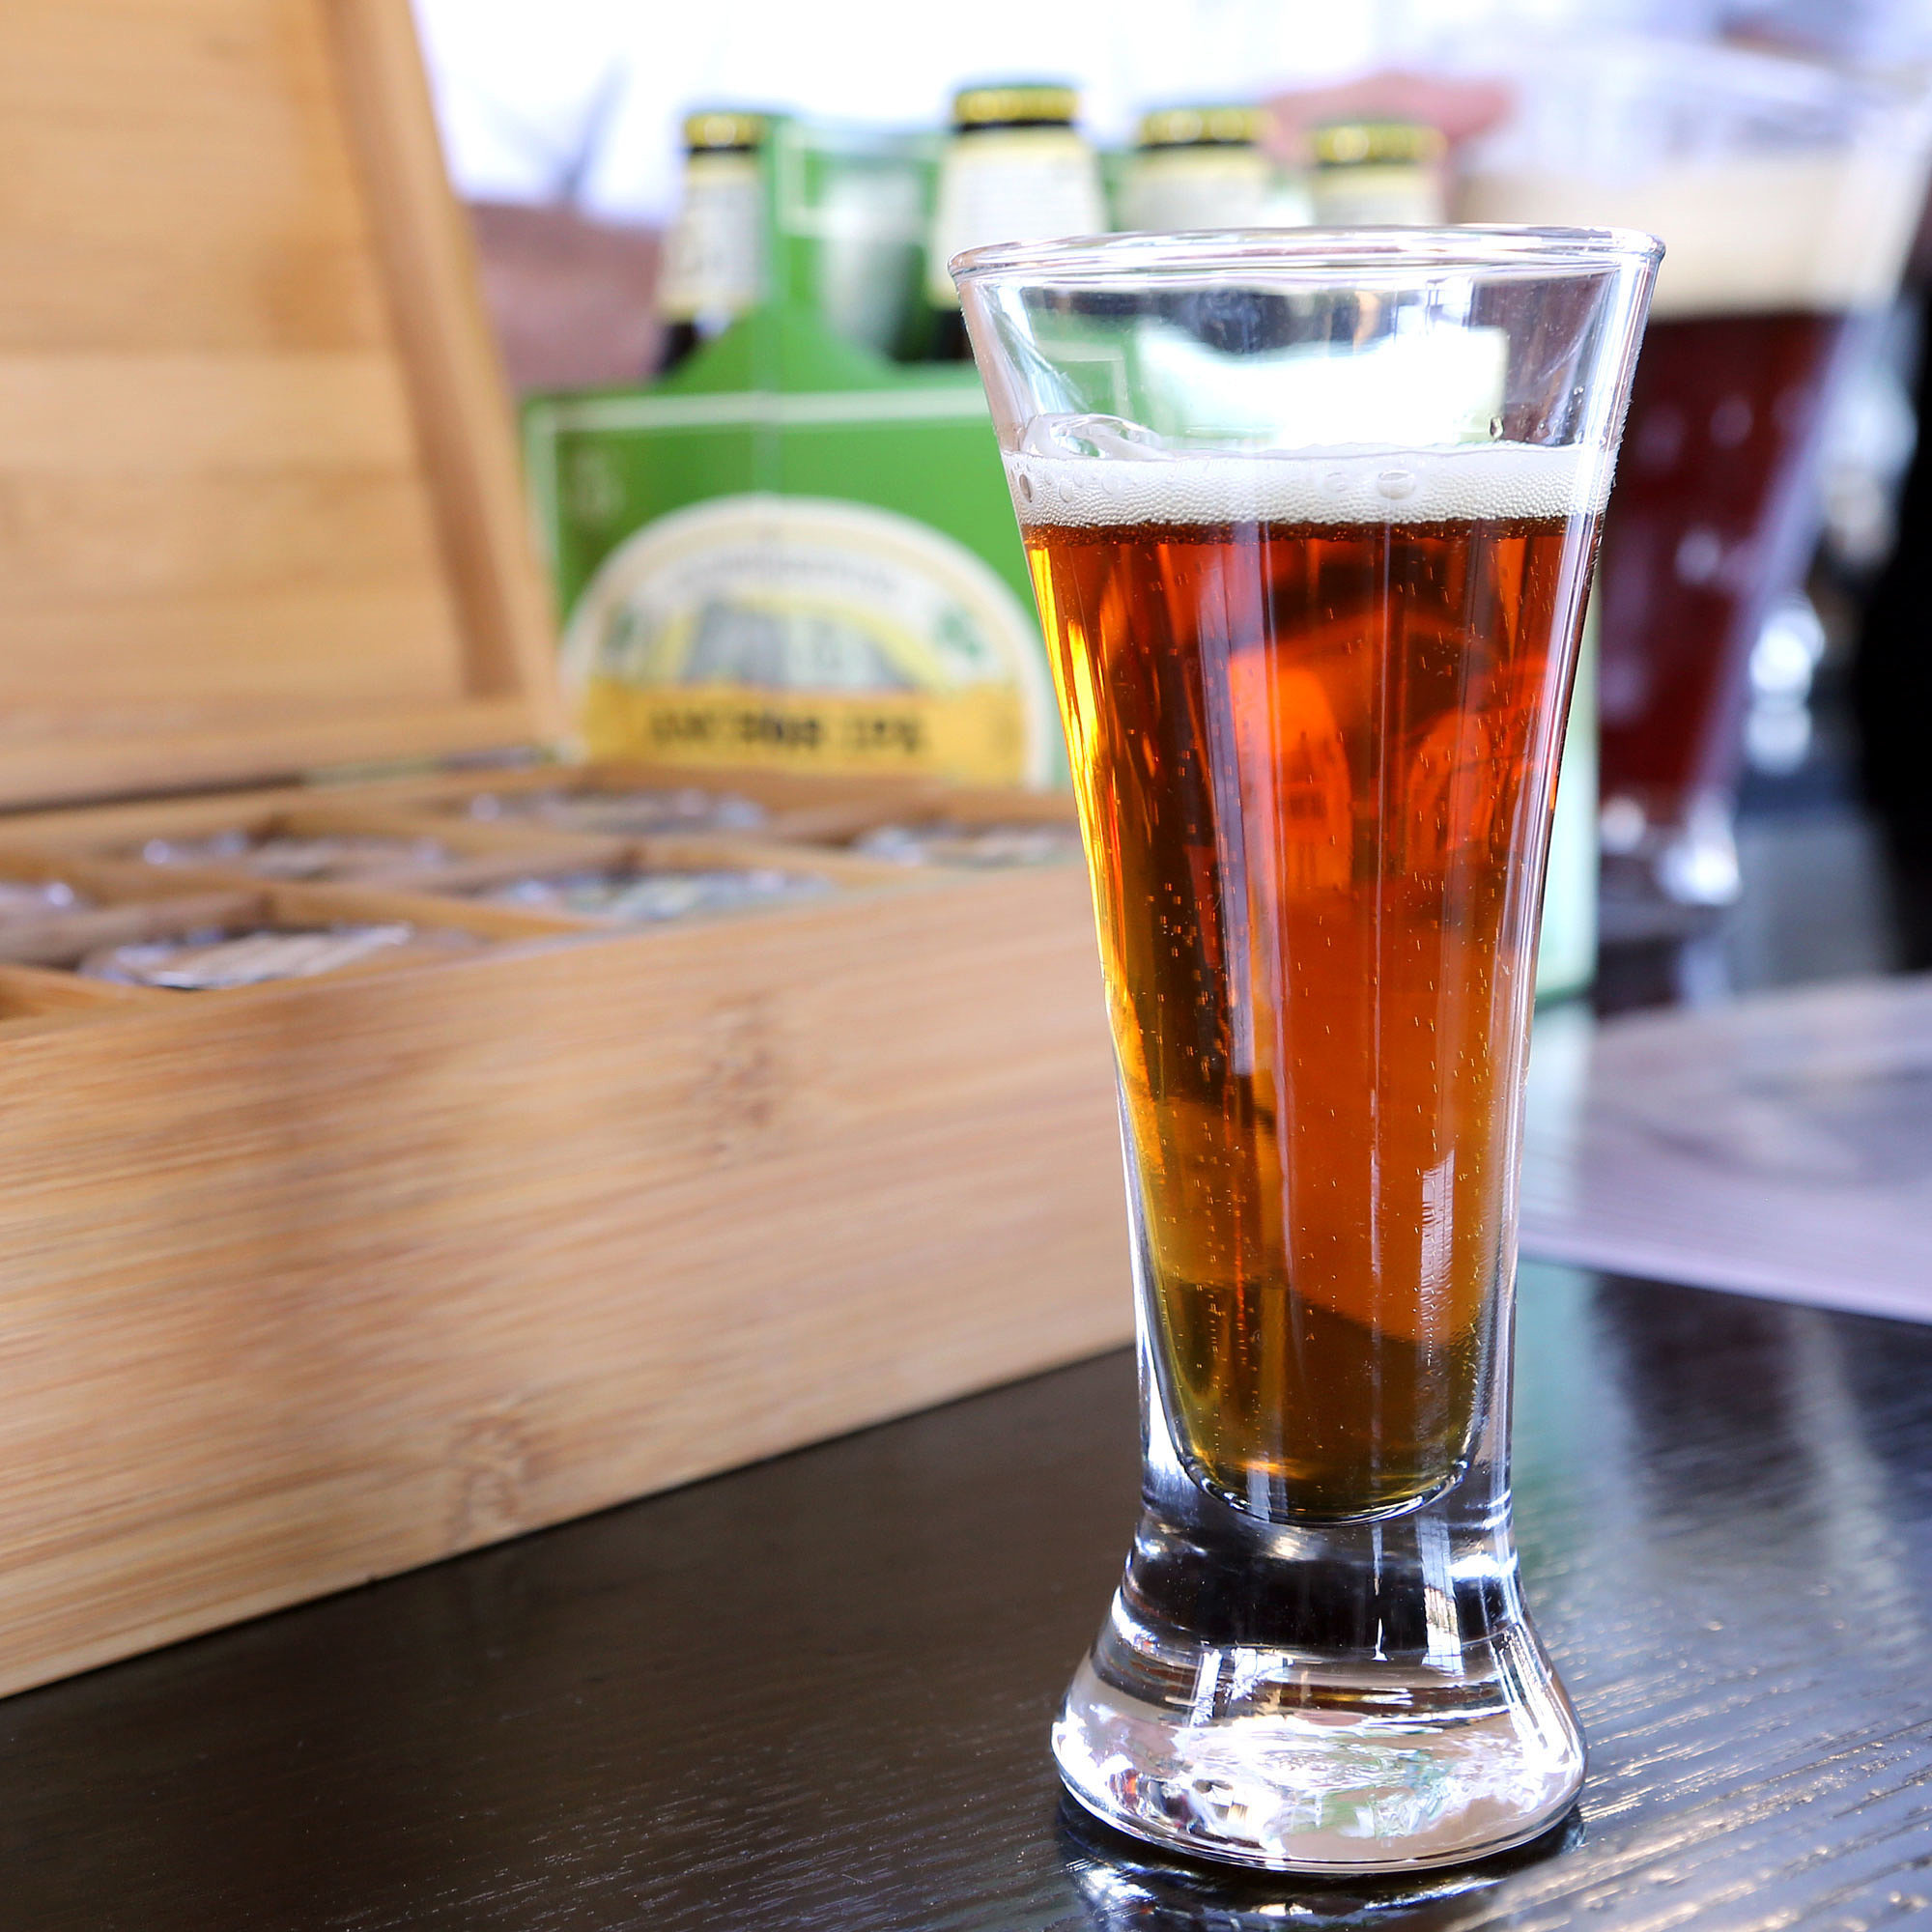 Cheers to the Health Benefits of Beer!